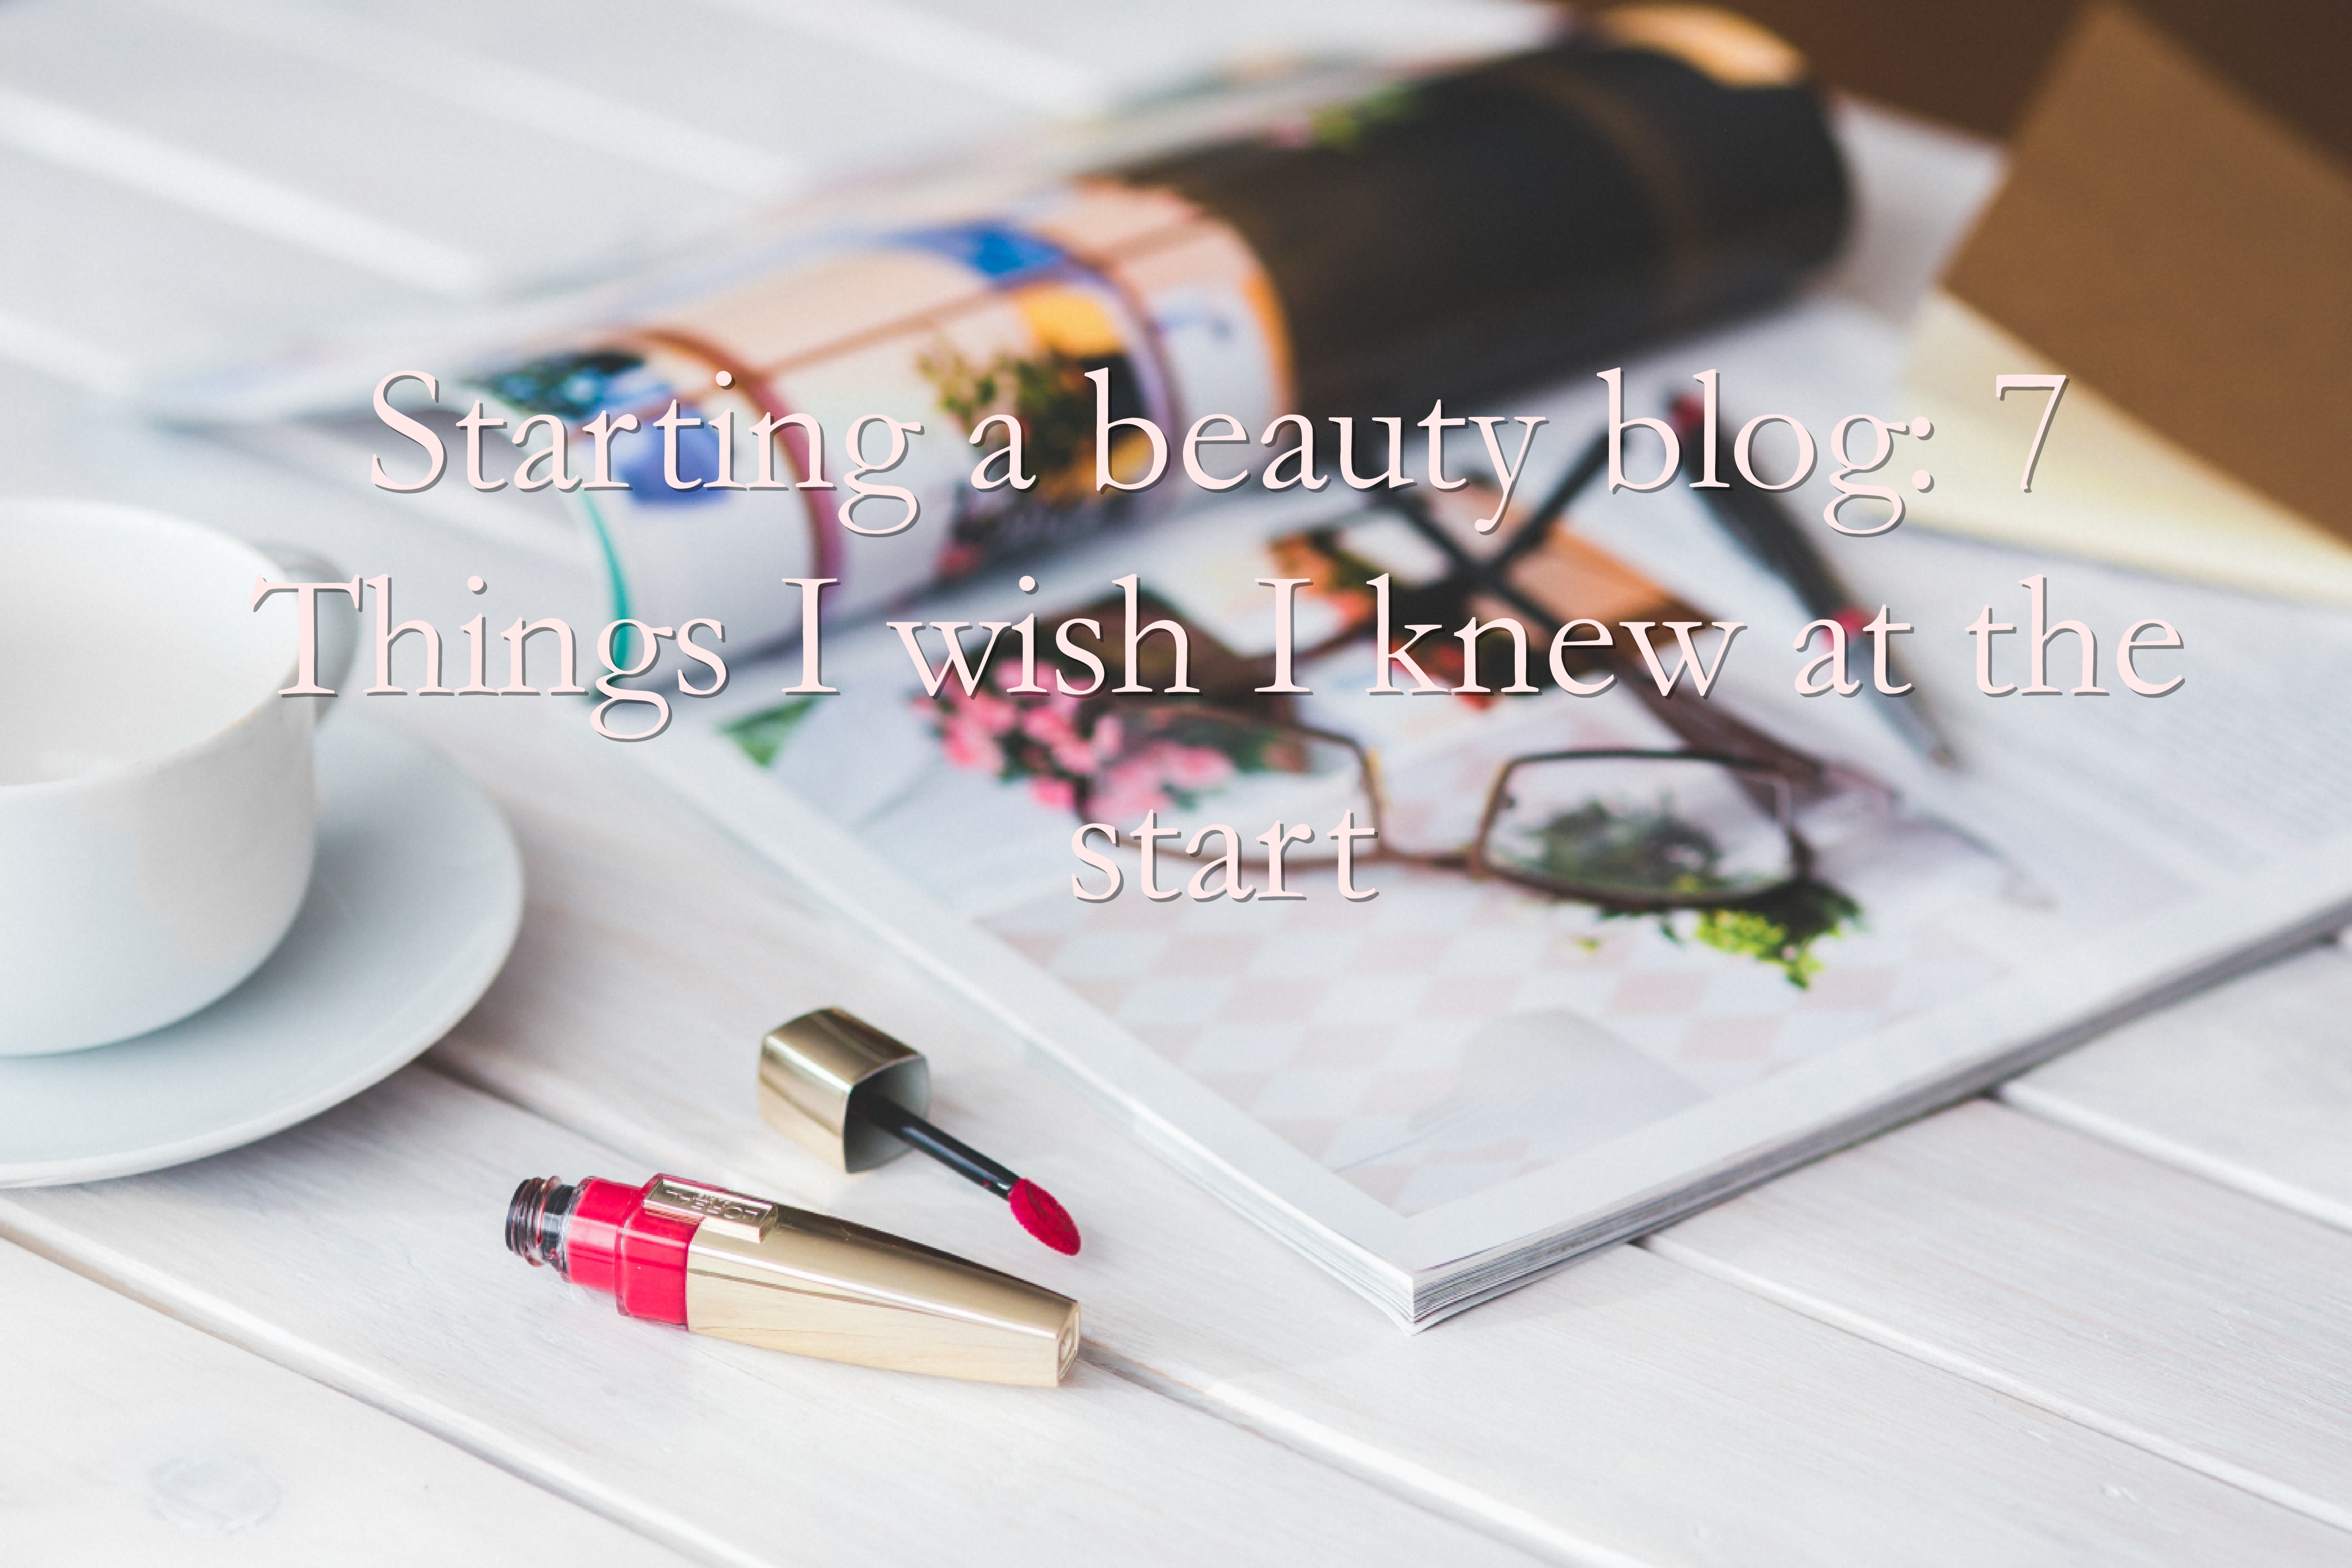 How to Start a Beauty Blog: Things I wish I knew